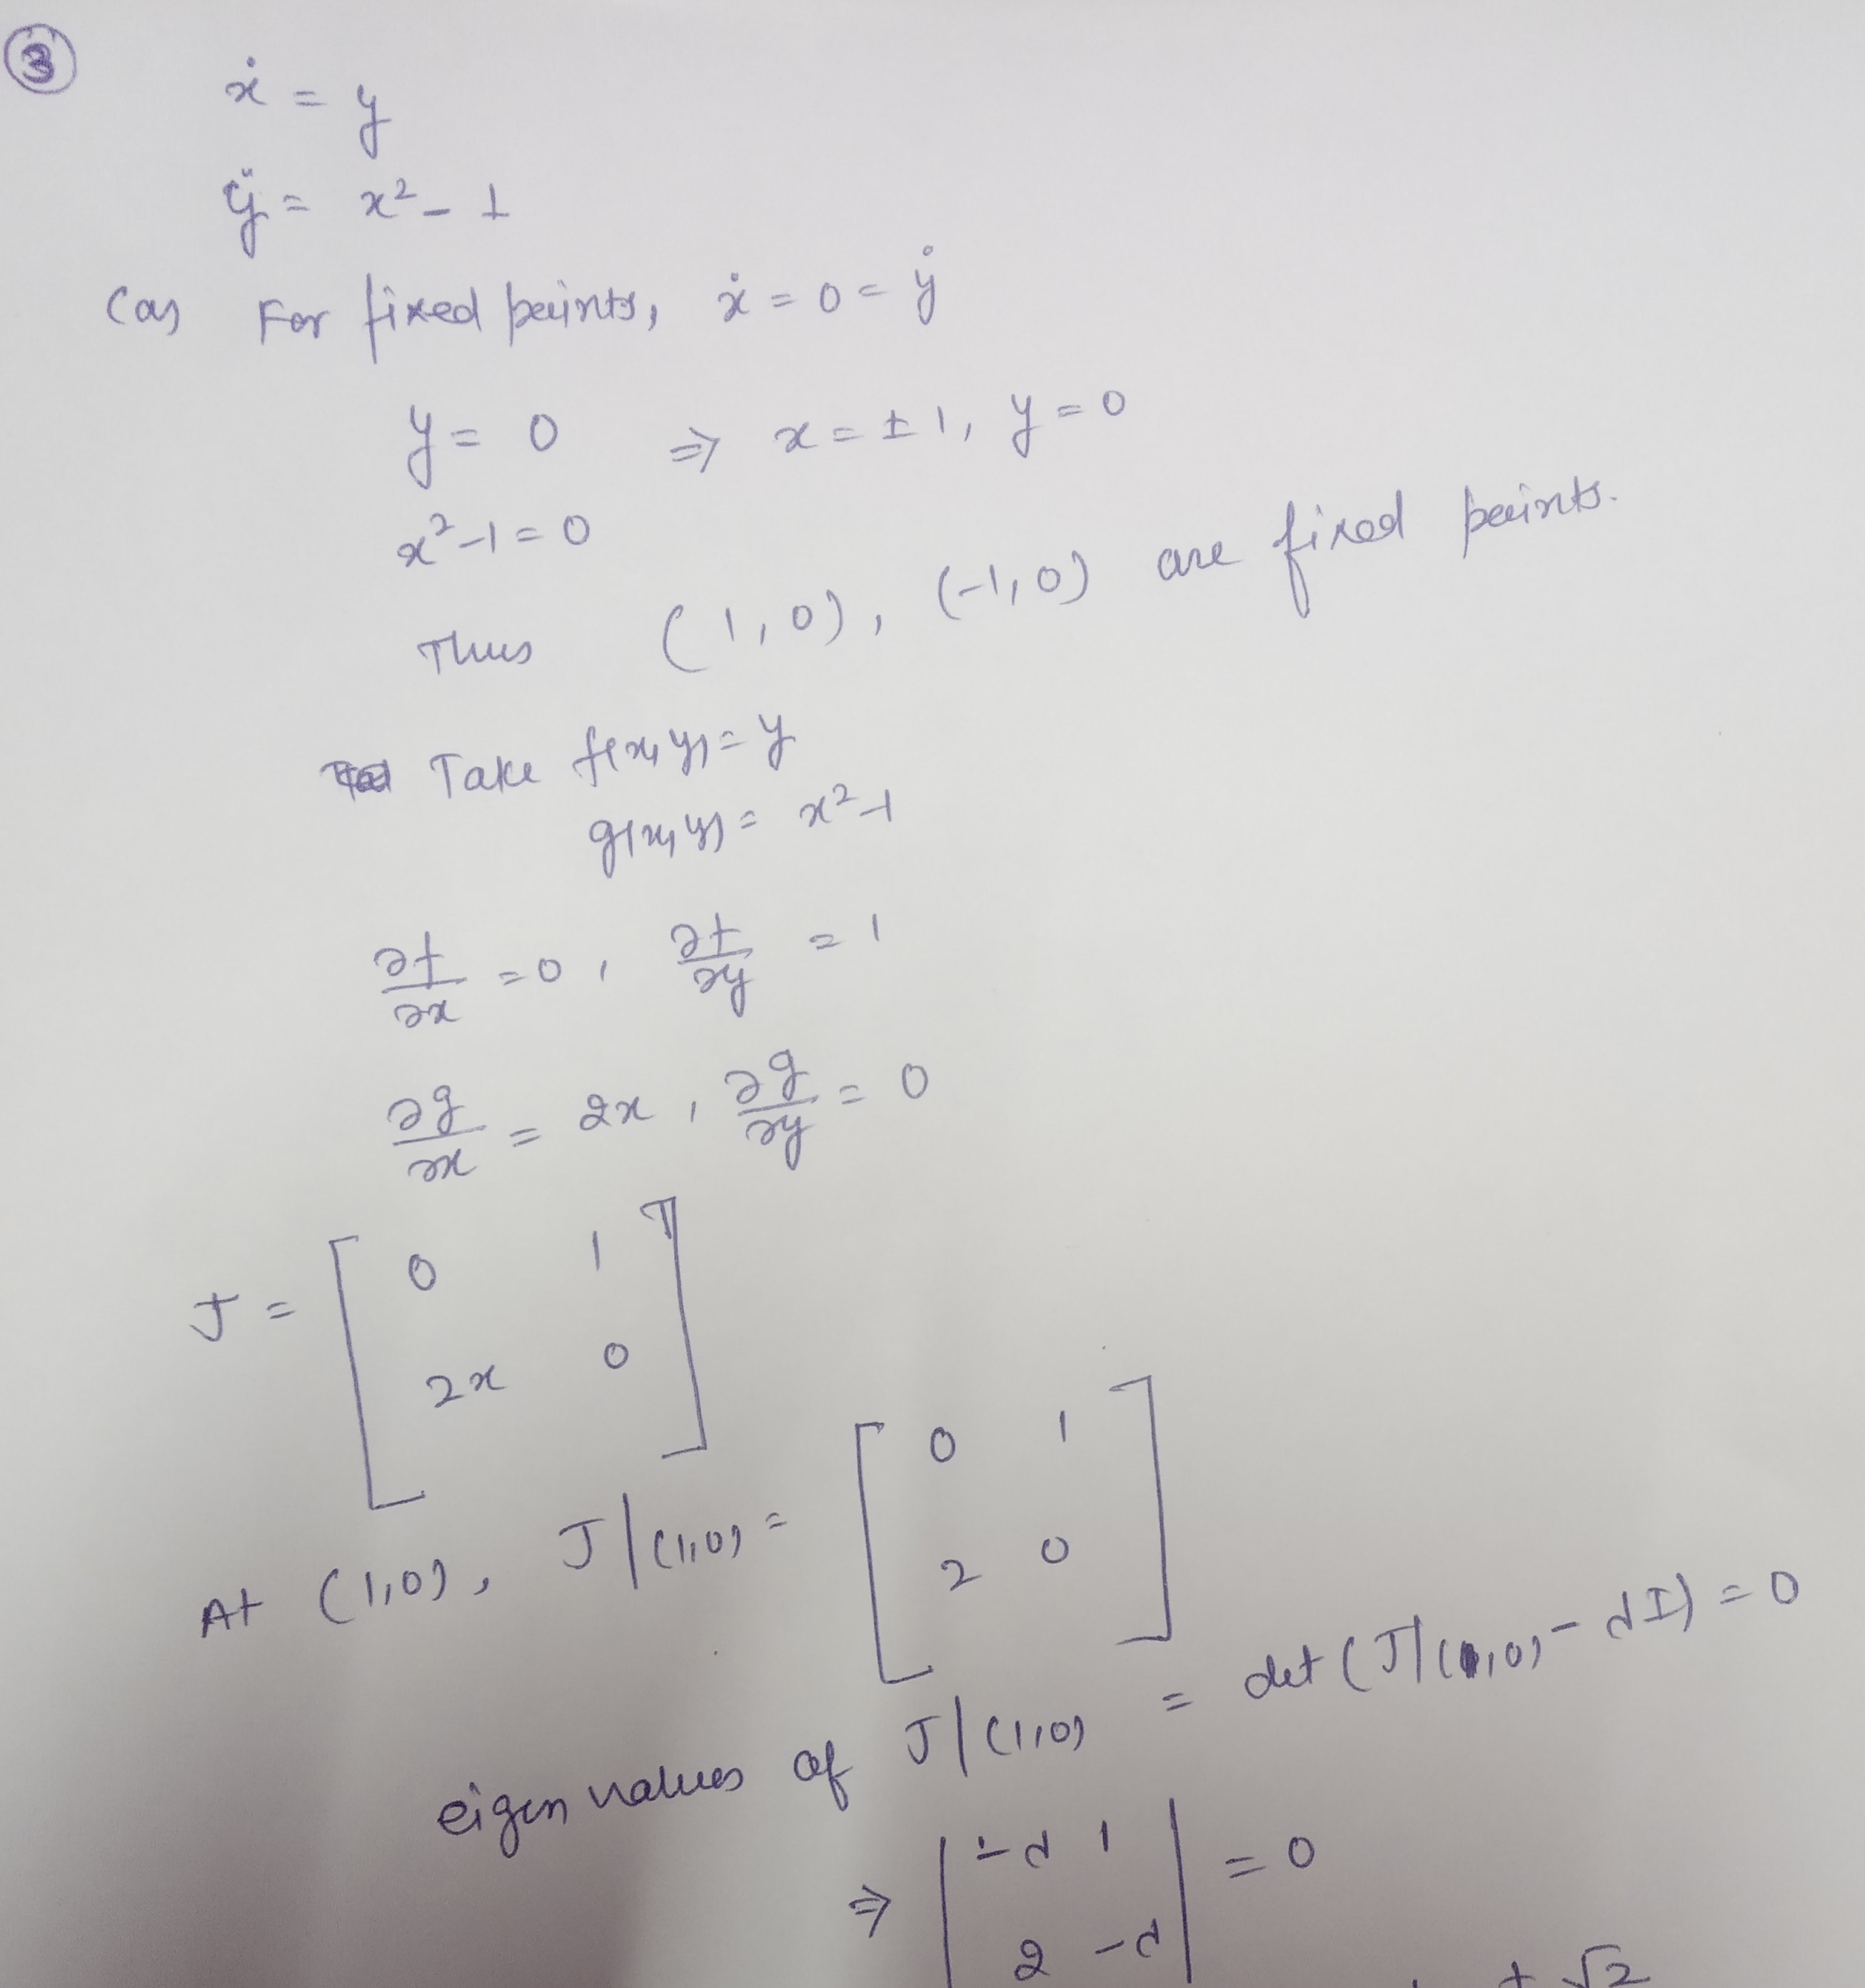 Differential Equations Questions: Motion, Linear Stability, System And Value